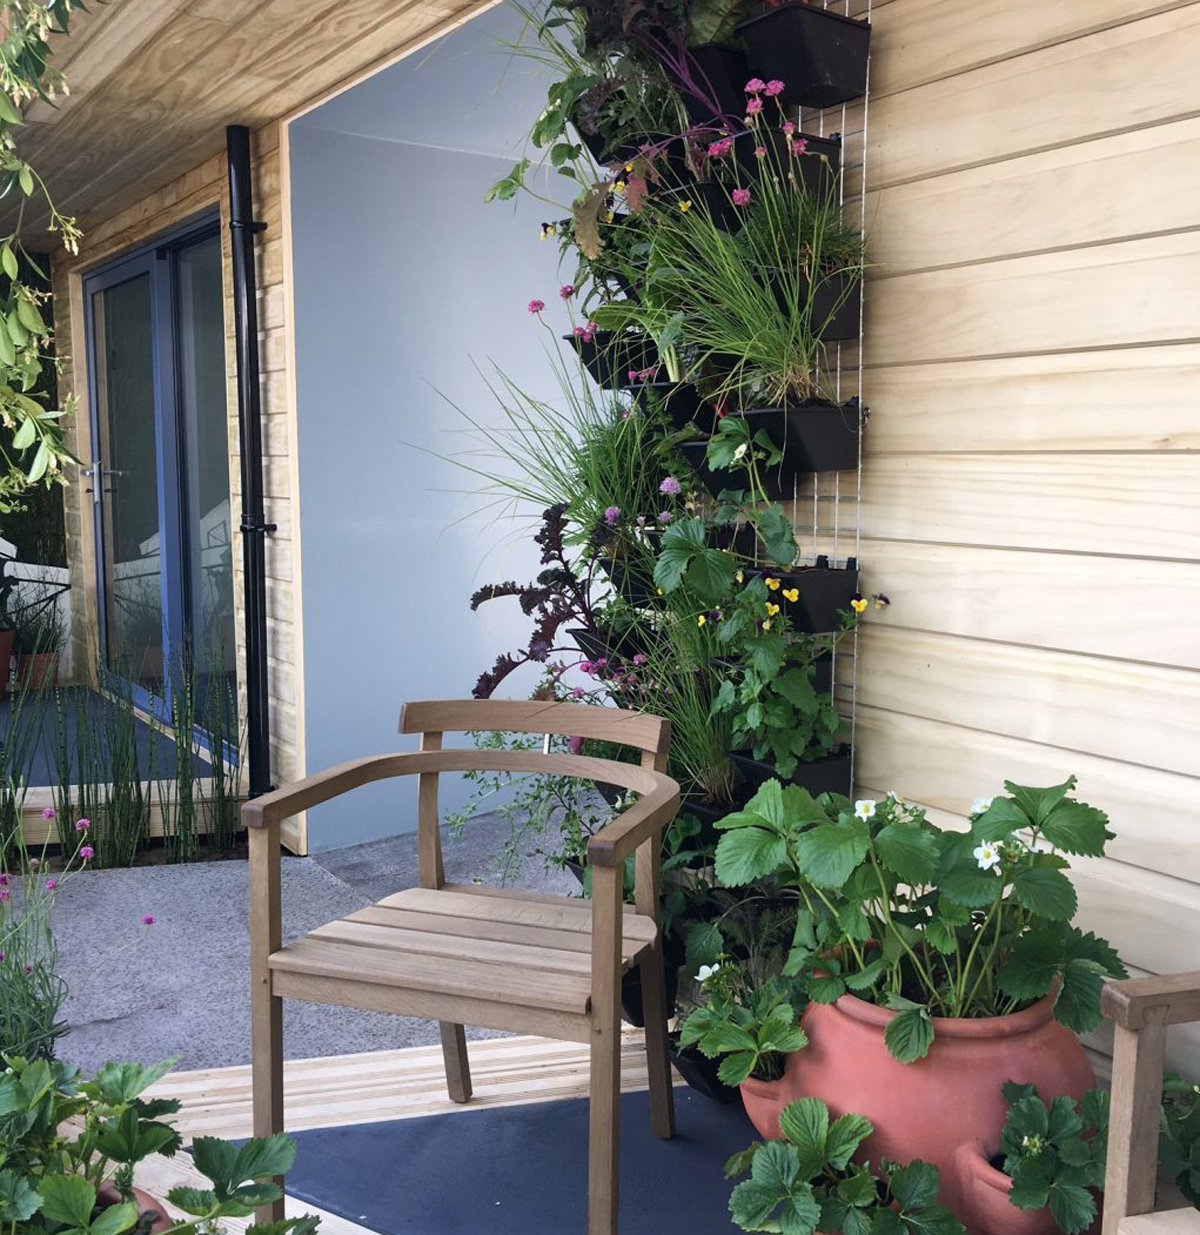 Accoya cladding, wooden chair and strawberry plant